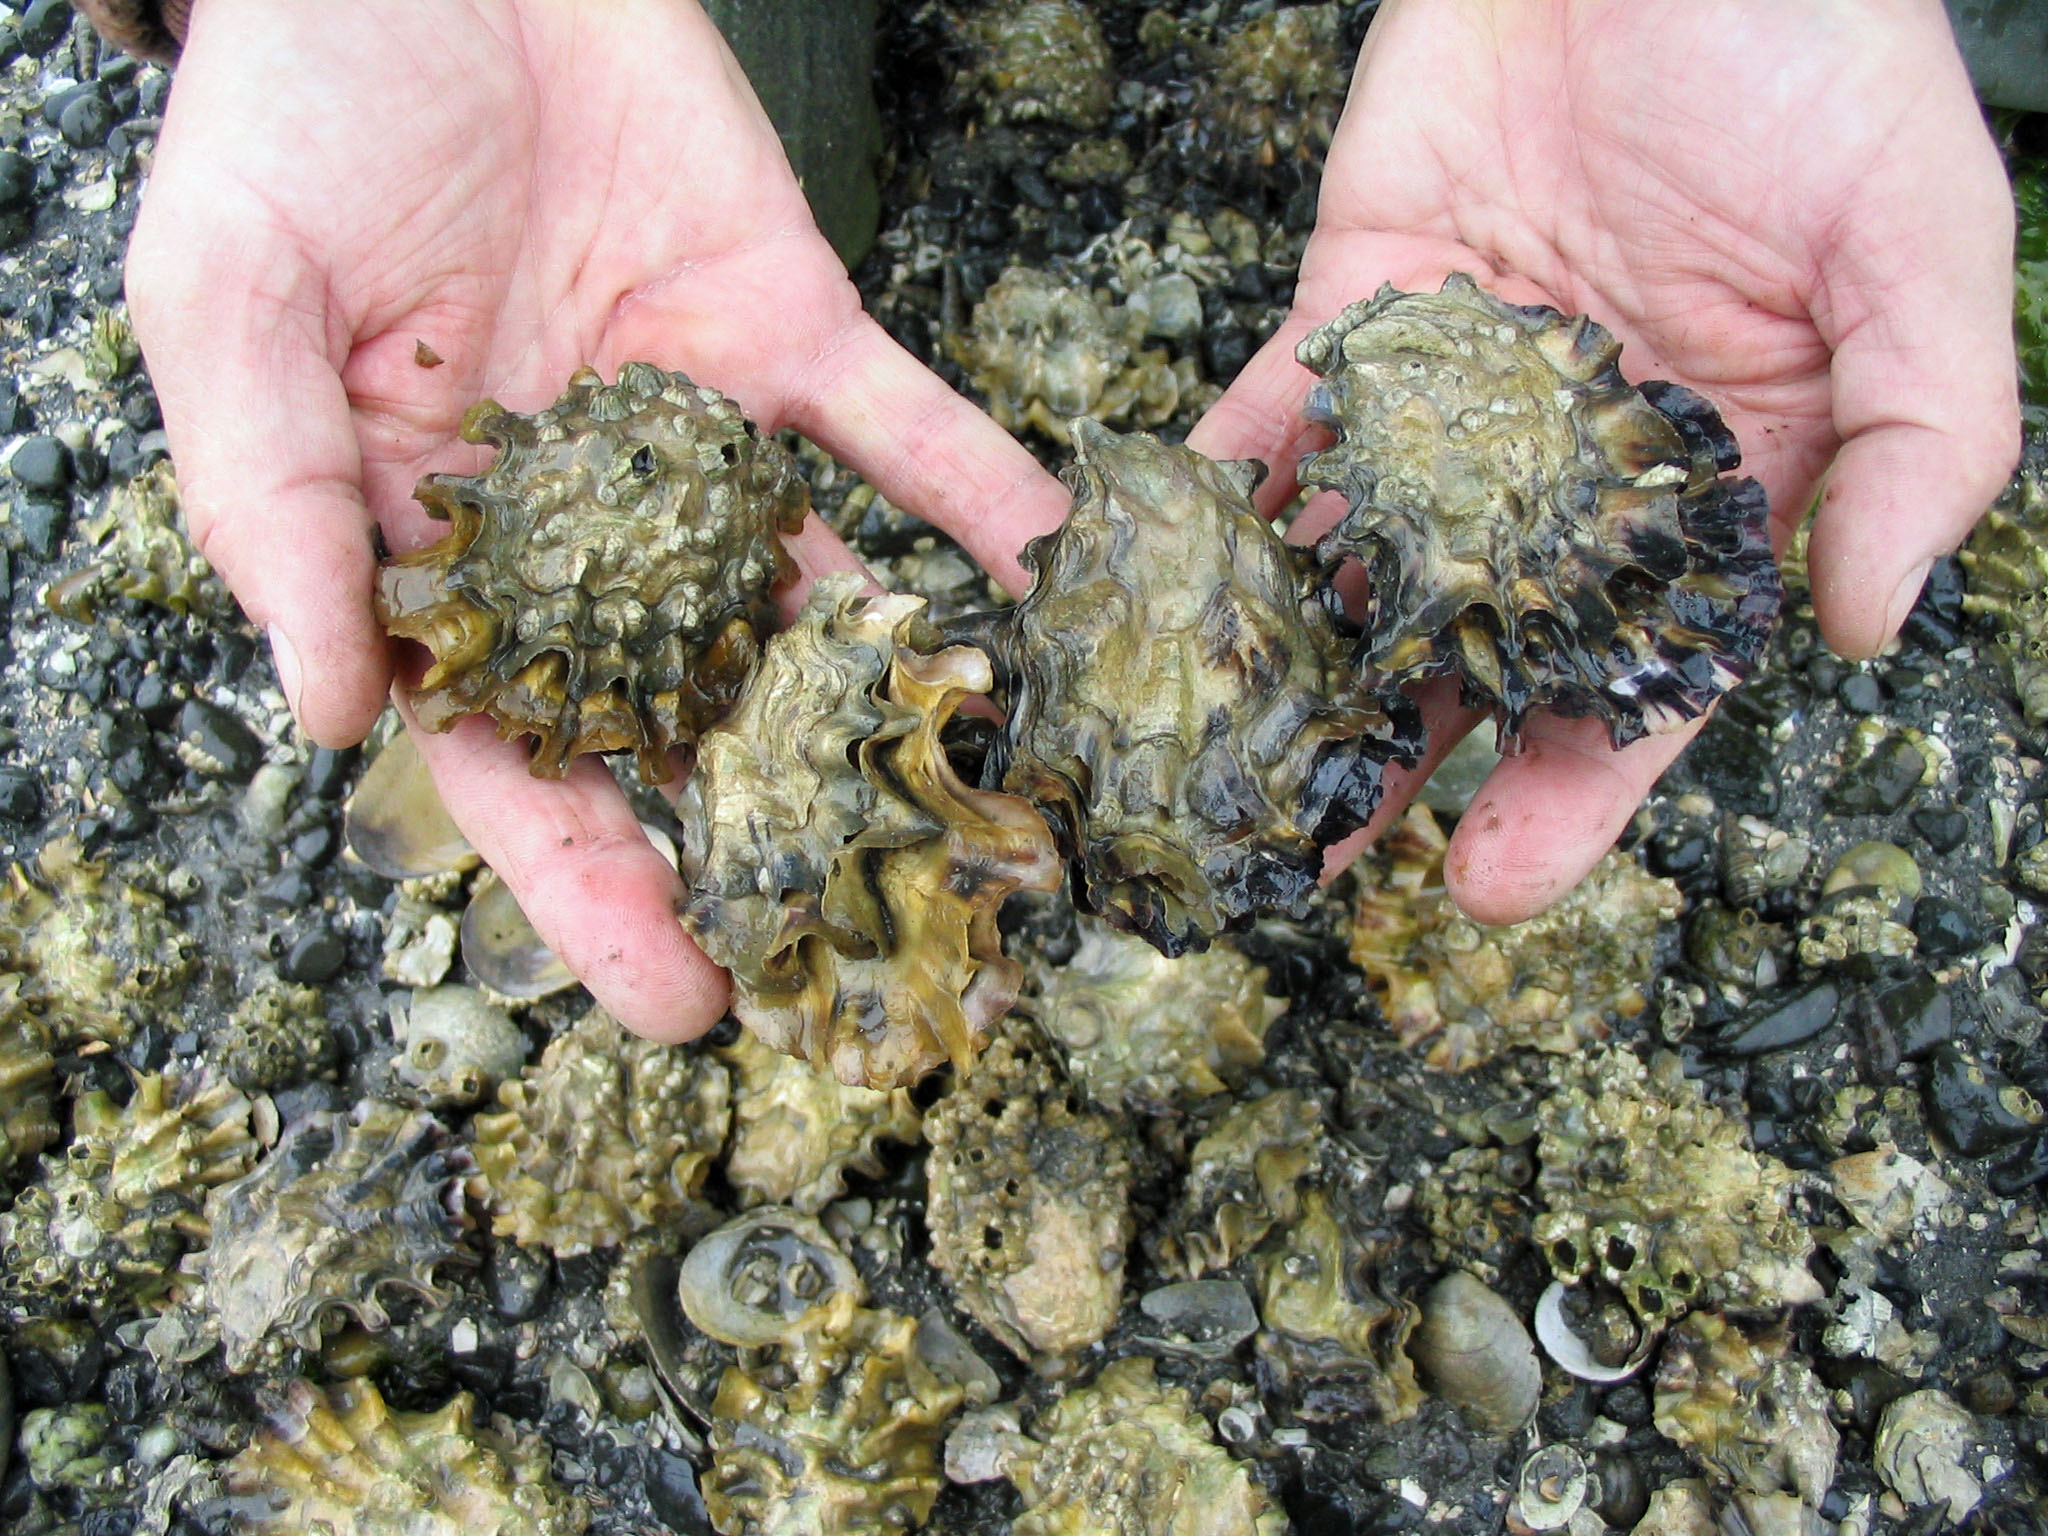 Text Box: Oyster Farm, Washington State, Photo courtesy of Taylor Shellfish Farms